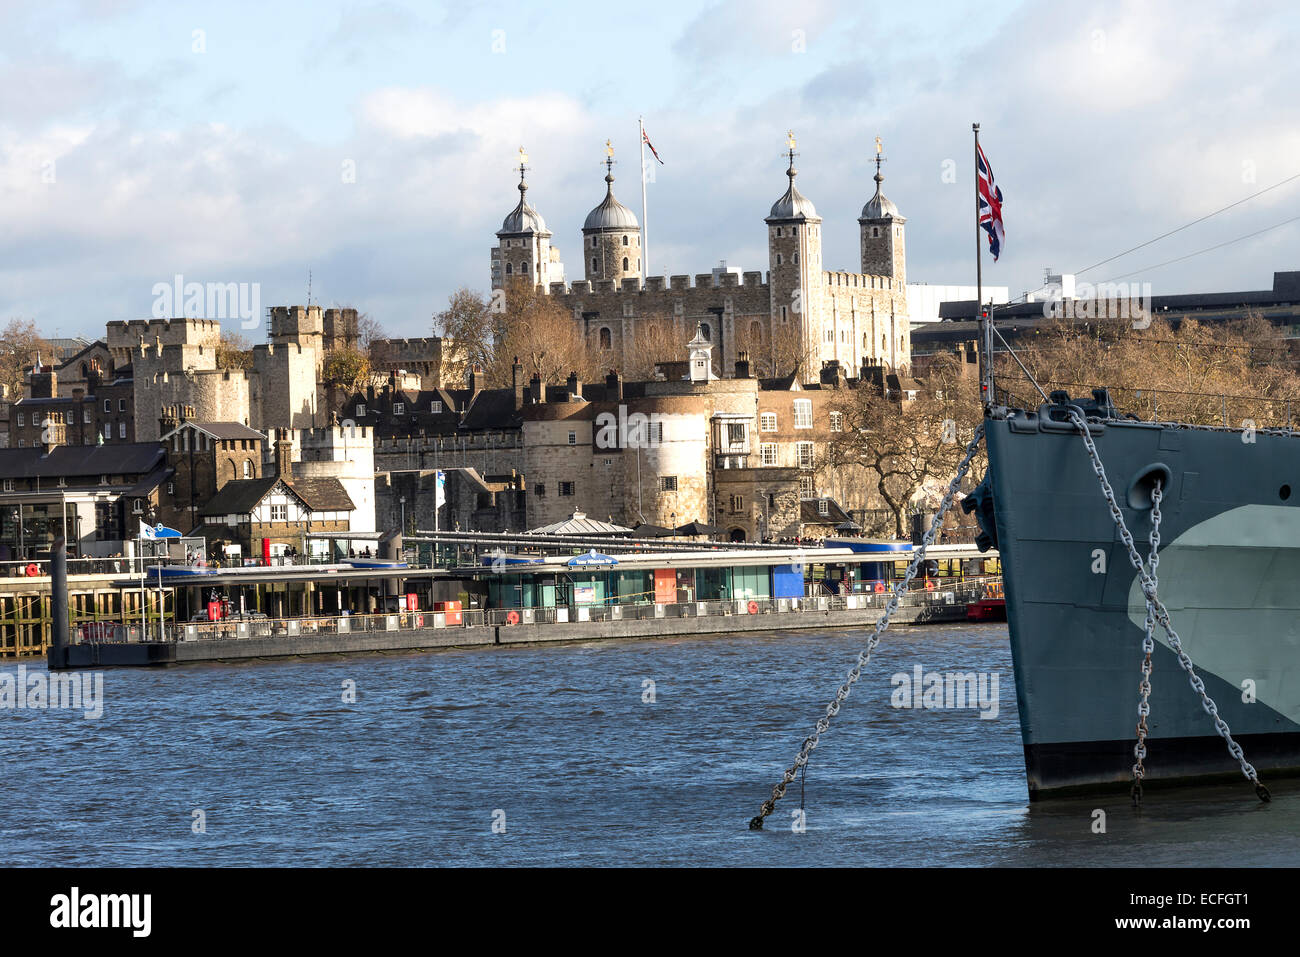 The Former Royal Navy Cruiser HMS Belfast Berthed in the River Thames with the Tower of London England United Kingdom Stock Photo